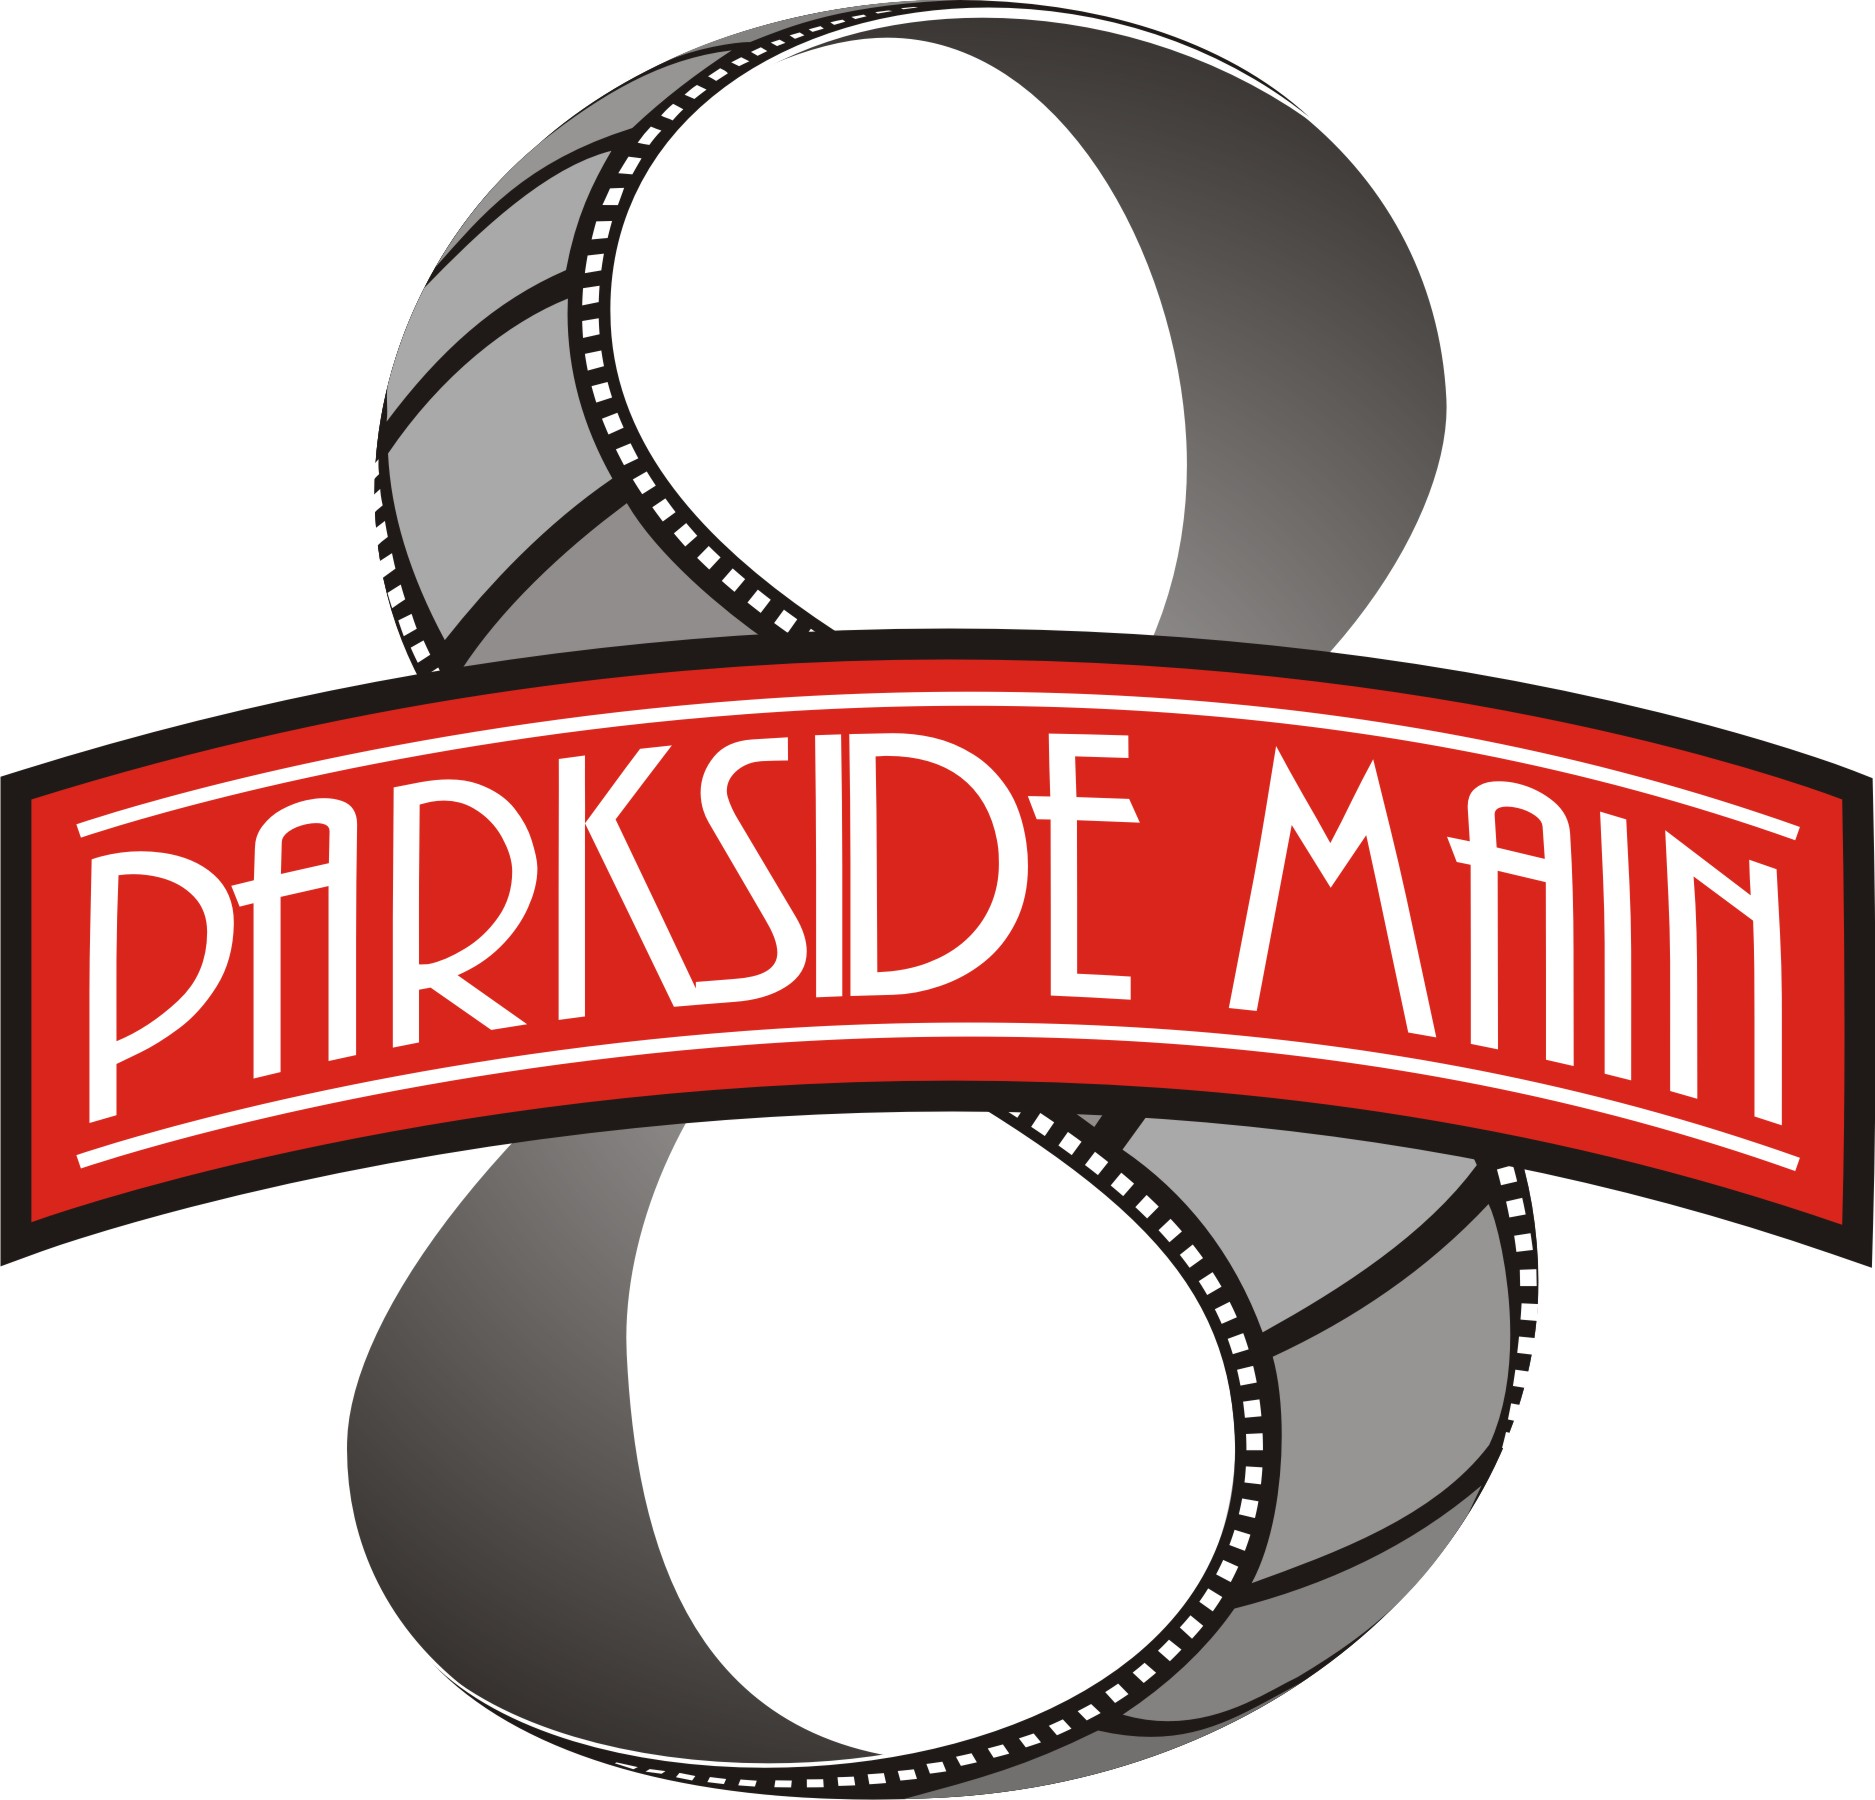 Parkside Main 8 logo.jpg